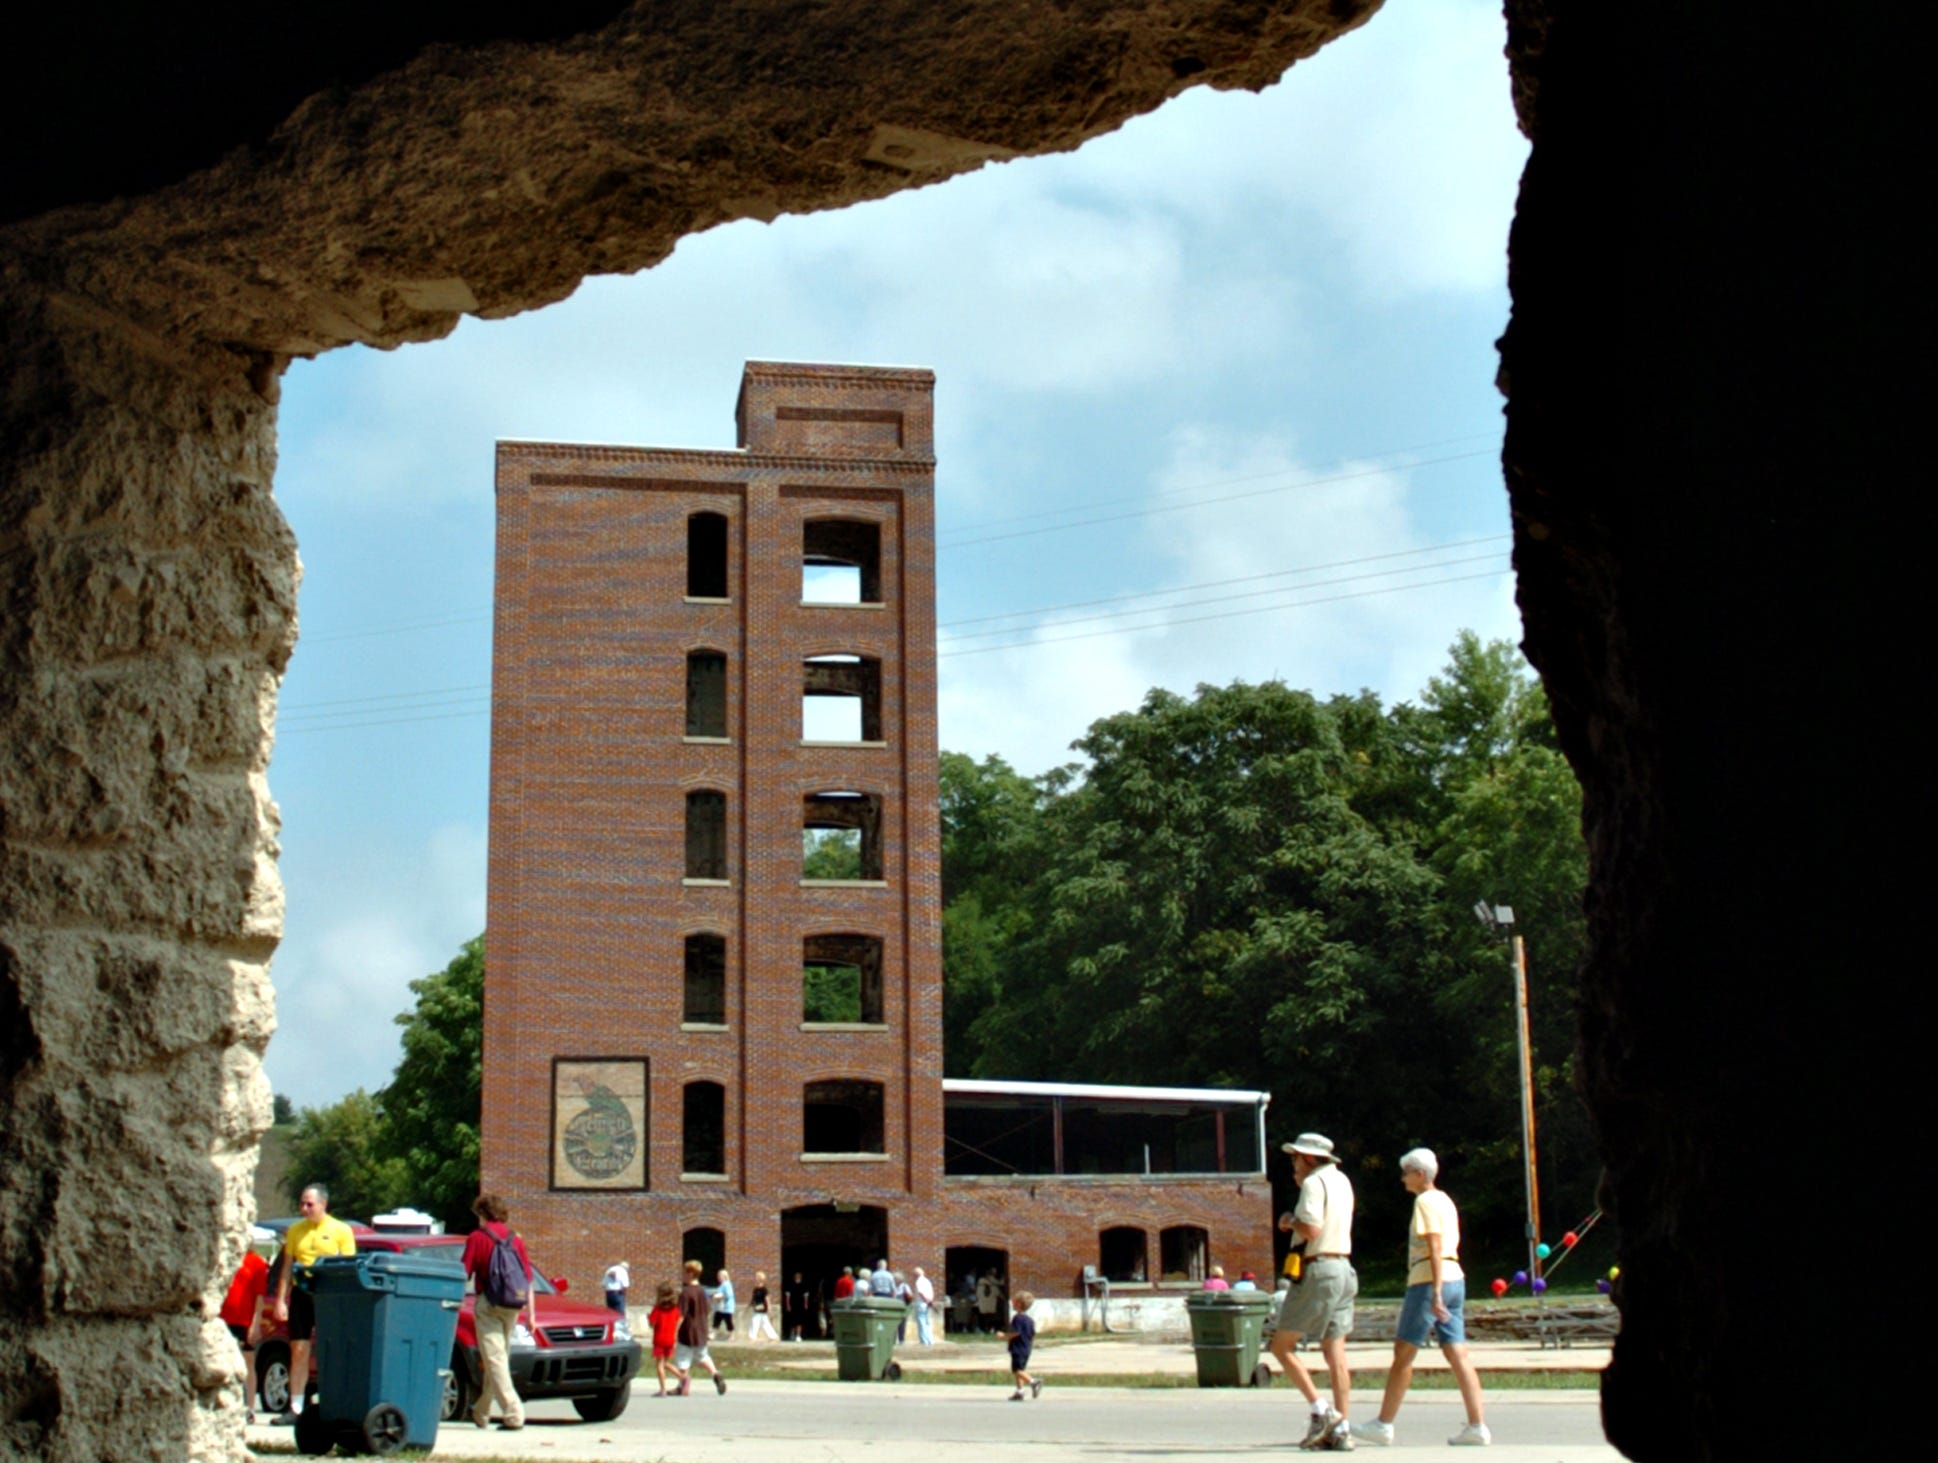 The Starr-Gennett building is framed by an opening of another building during the Starr-Gennett Walk of Fame celebration in the Whitewater Valley Gorge Park Saturday, Sept. 8, 2007.